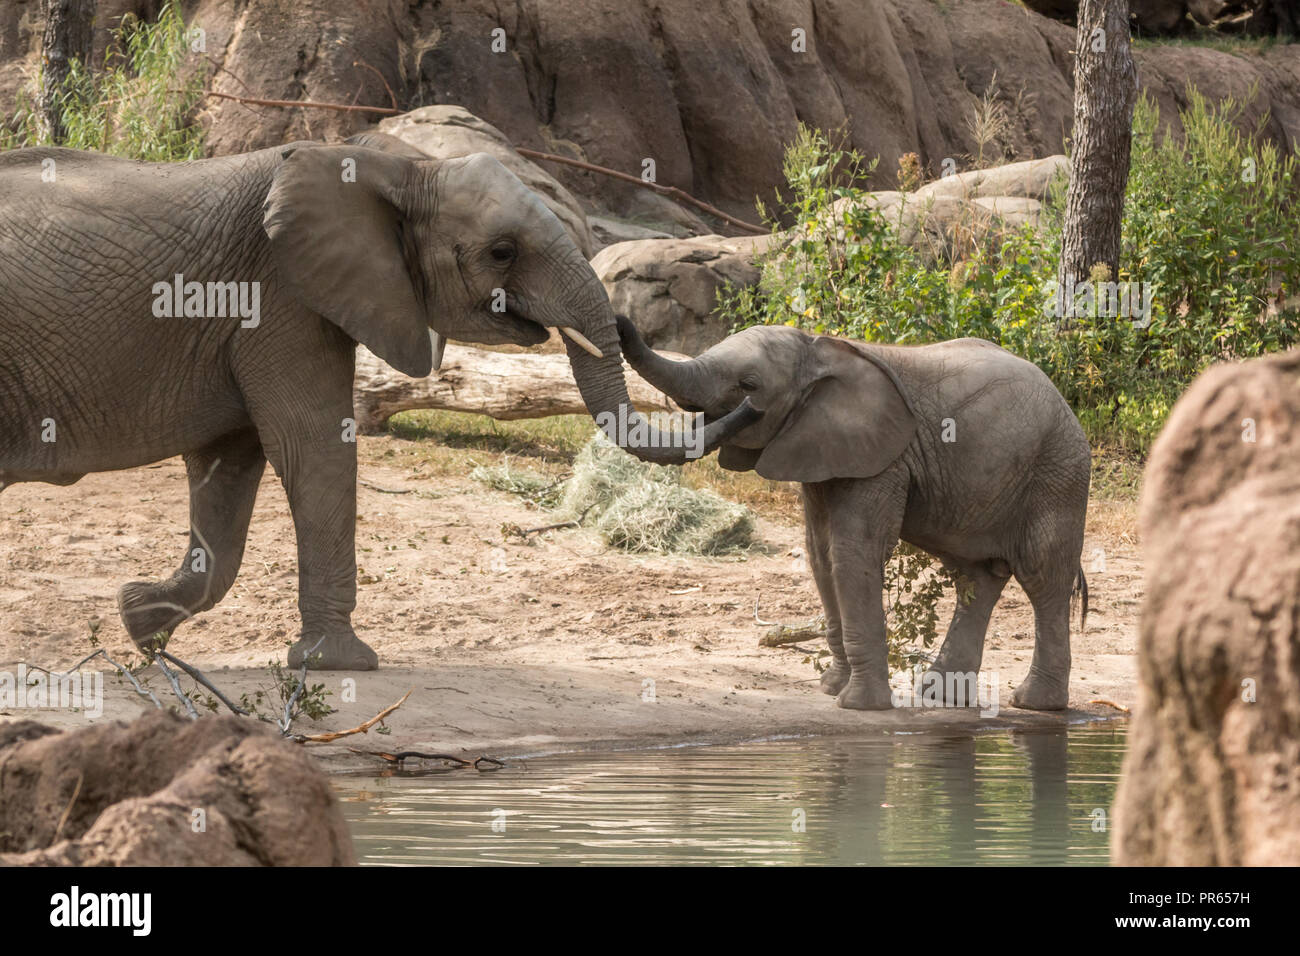 Mother and baby elephant at Dallas Zoo - Stock Image